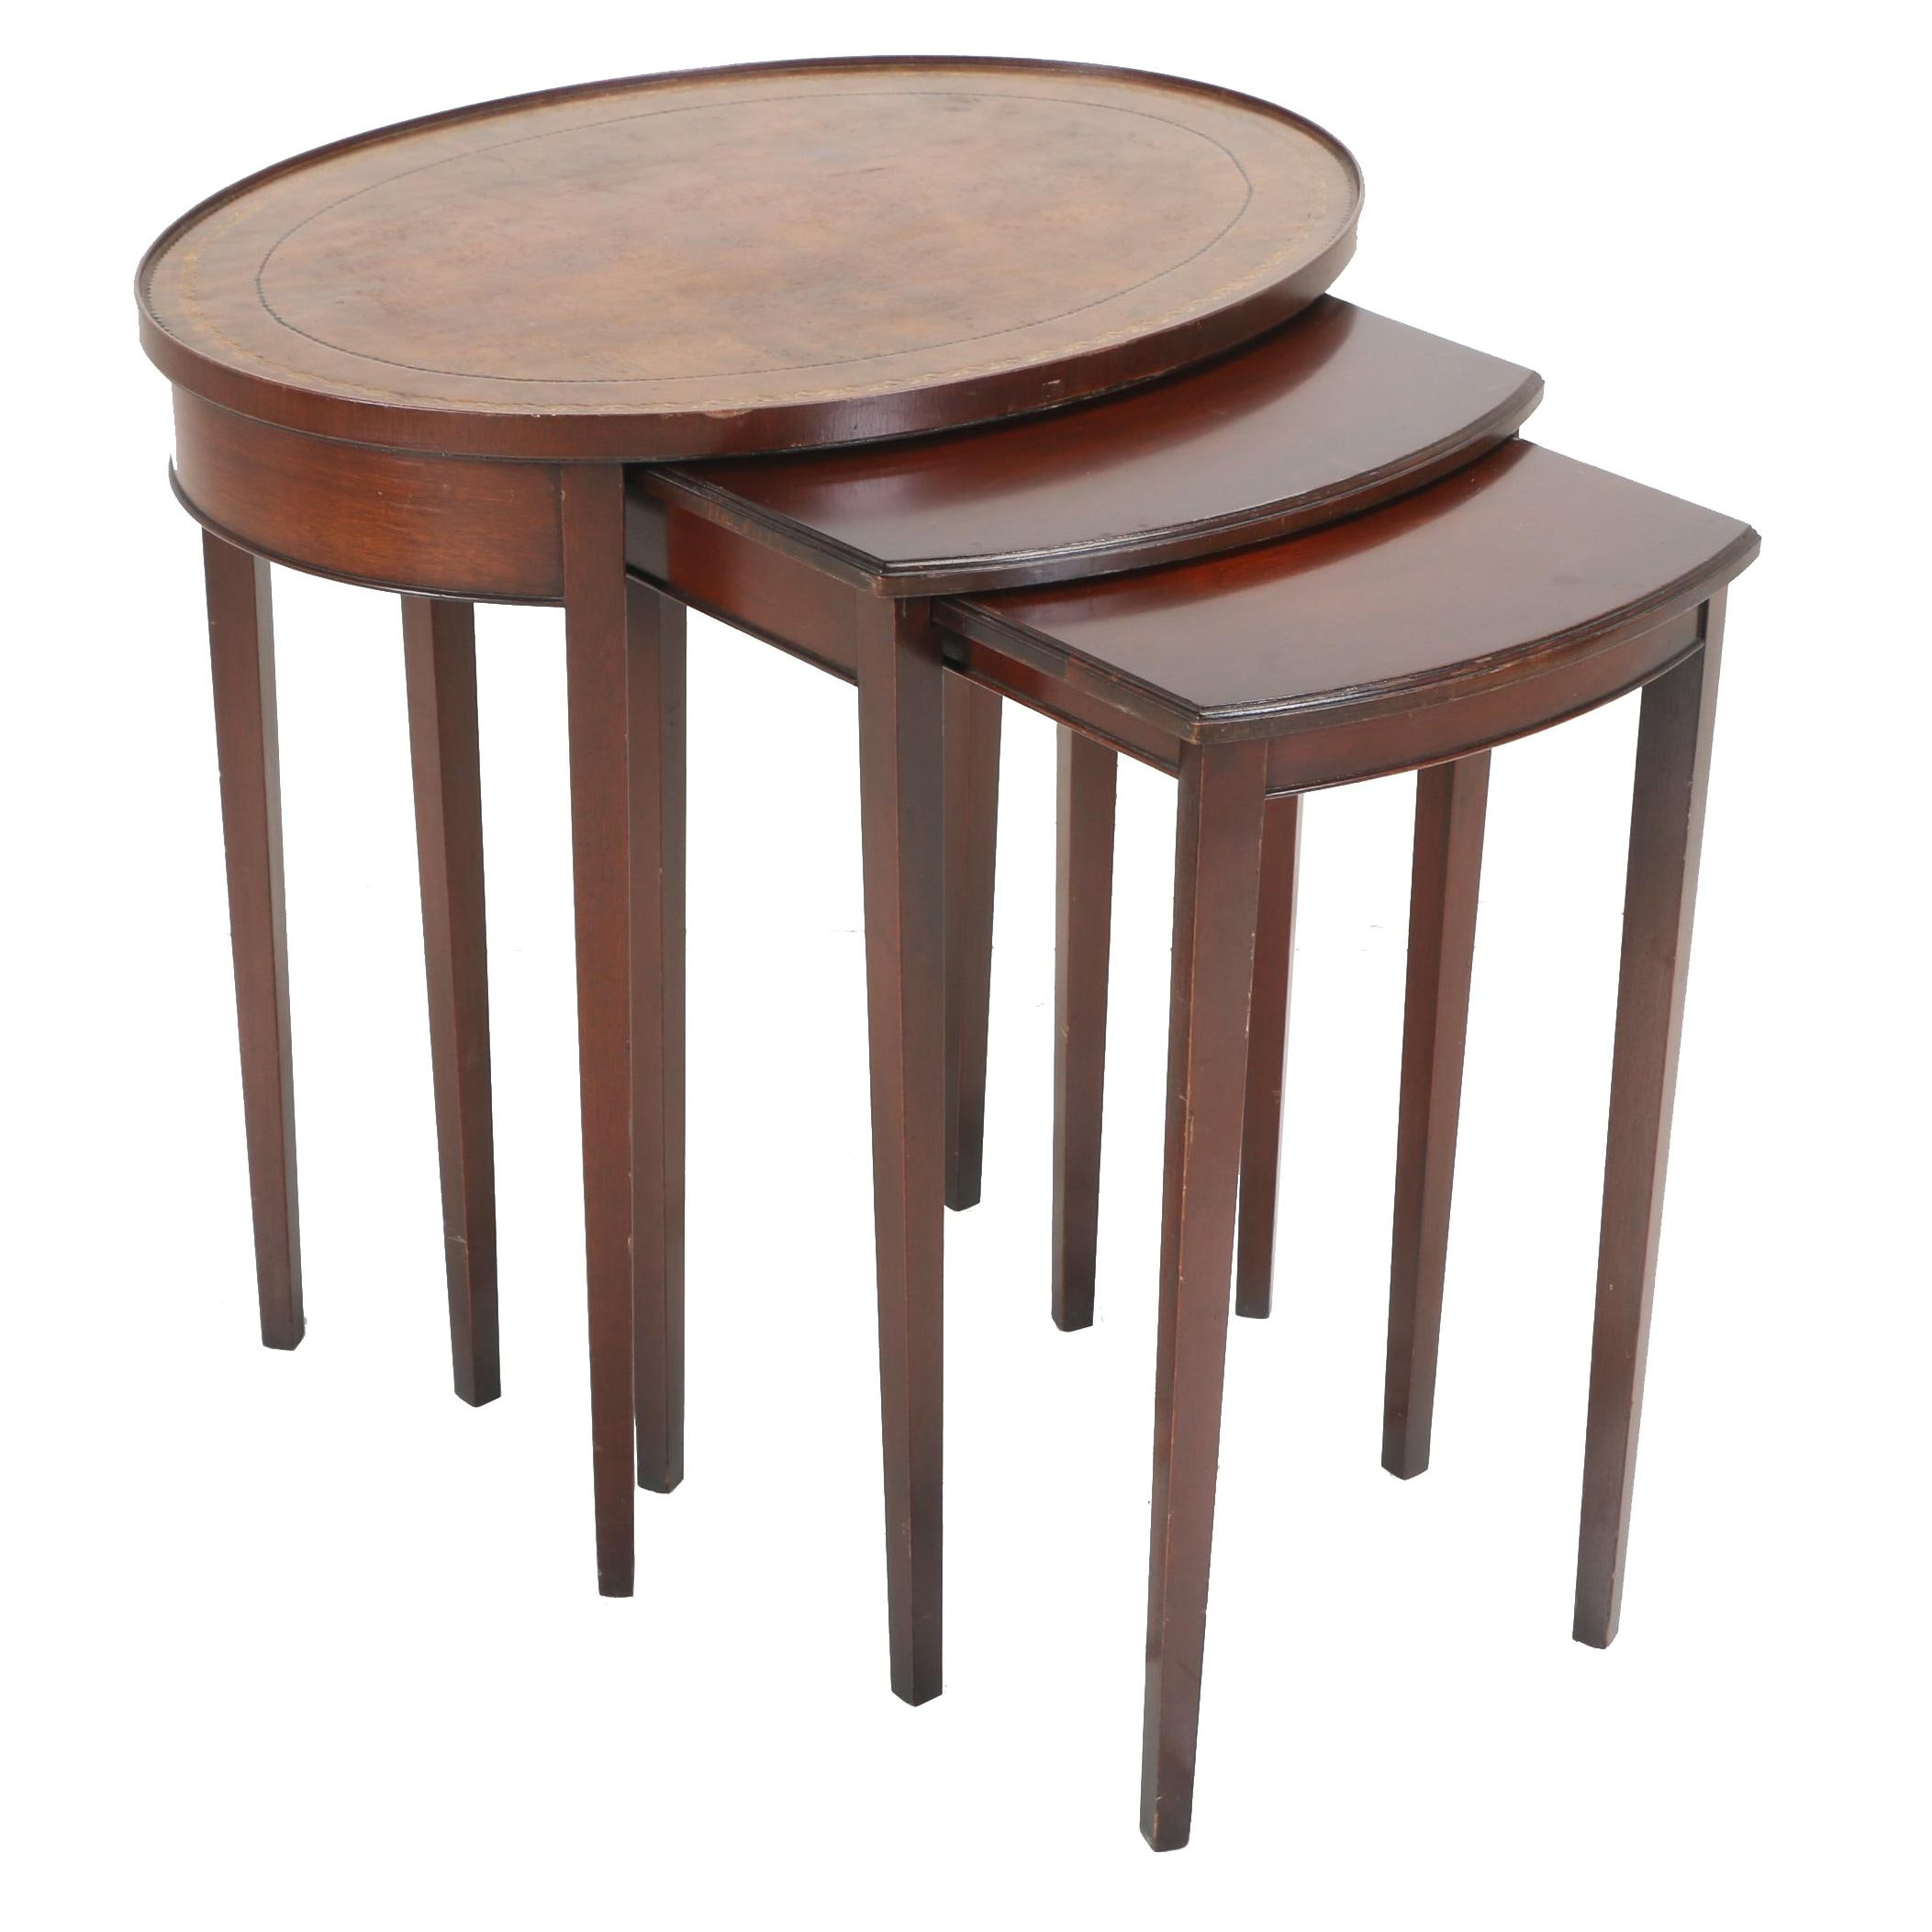 Three Federal Style Mahogany Graduated Side Tables by Imperial, Circa 1940